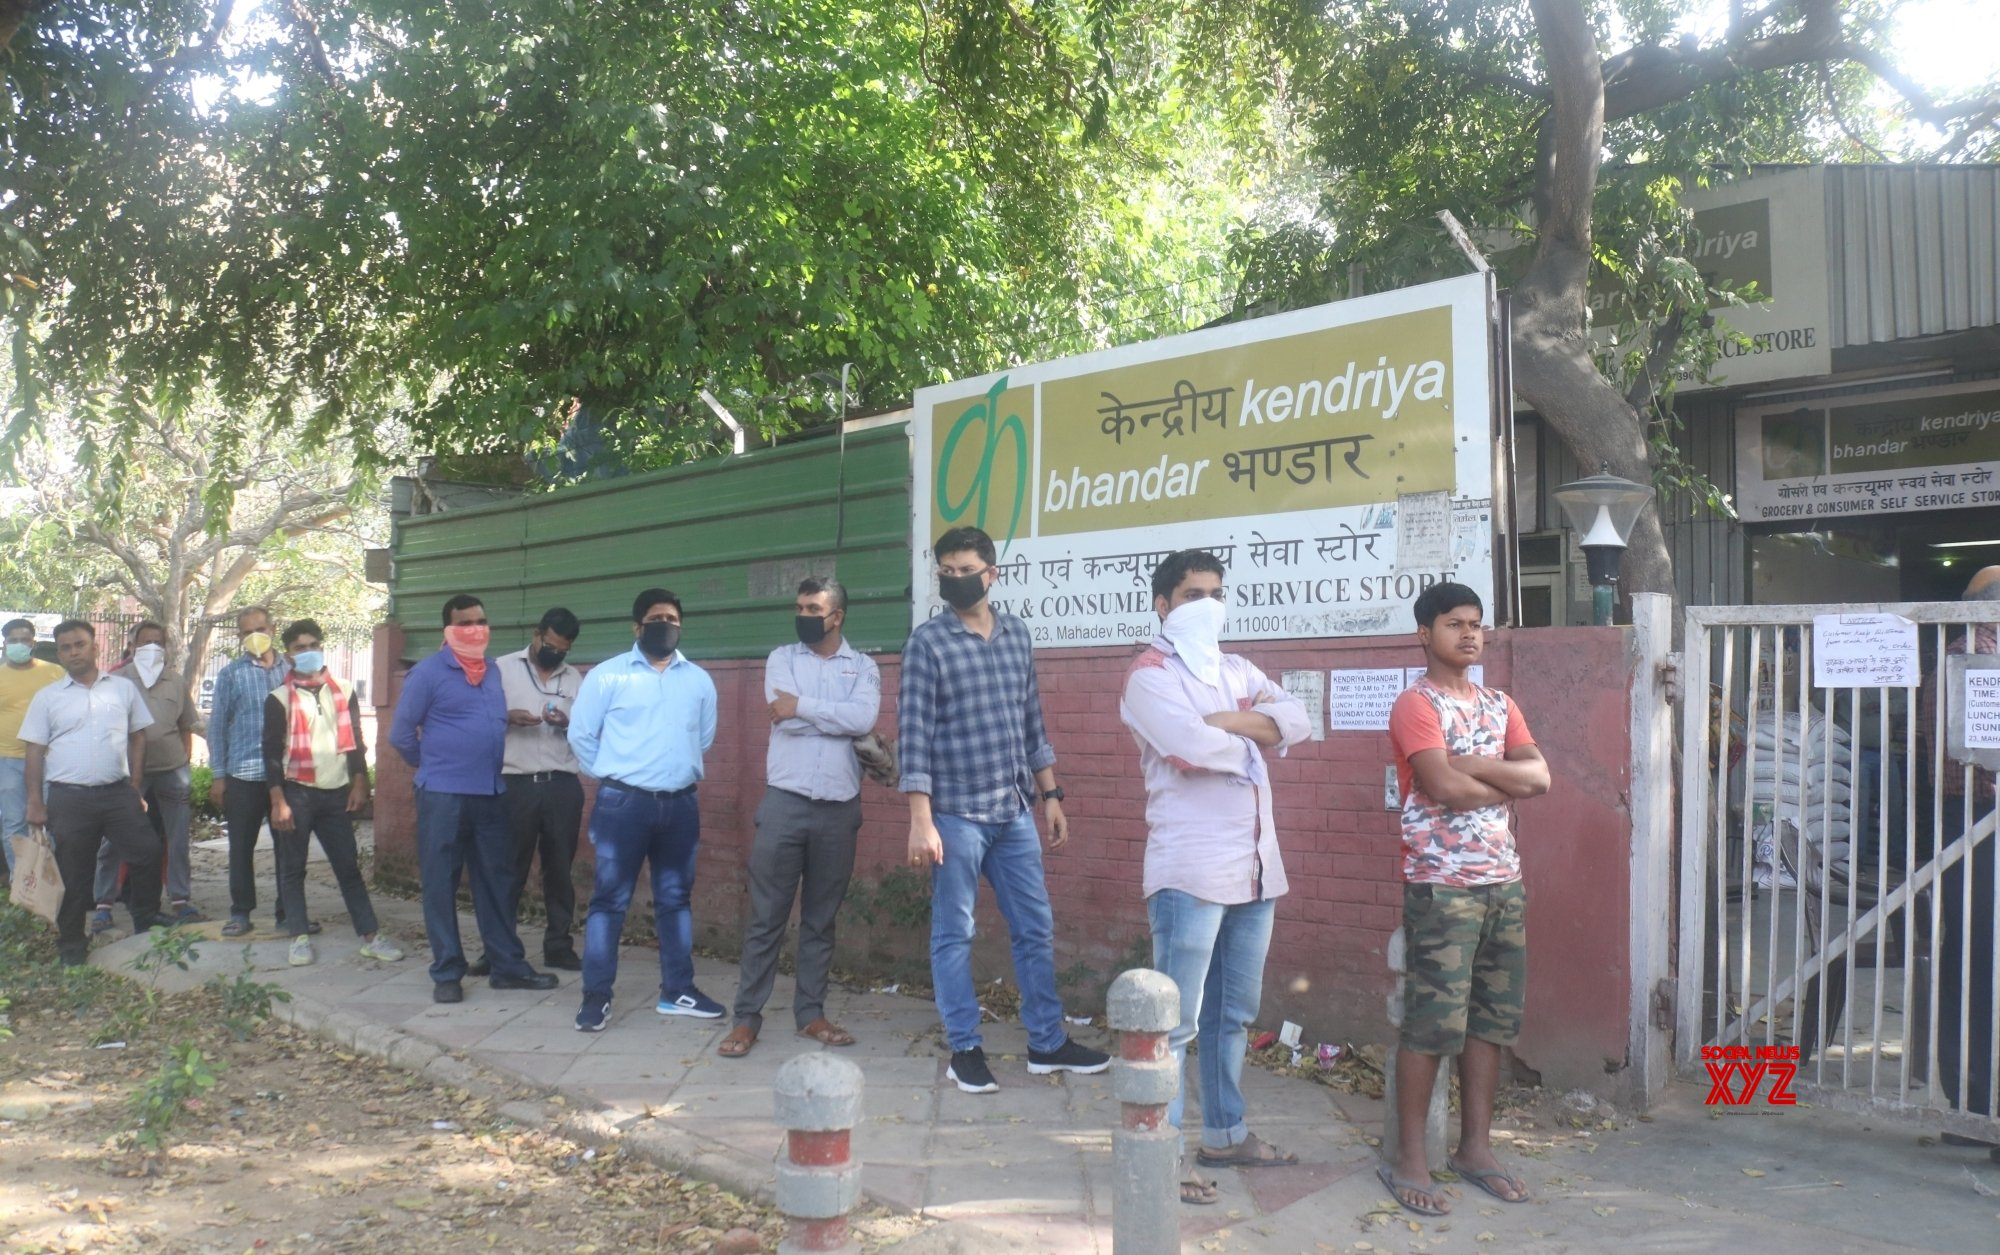 New Delhi: - People queue up outside Kendriya Bhandar during 21 - day lockdown #Gallery